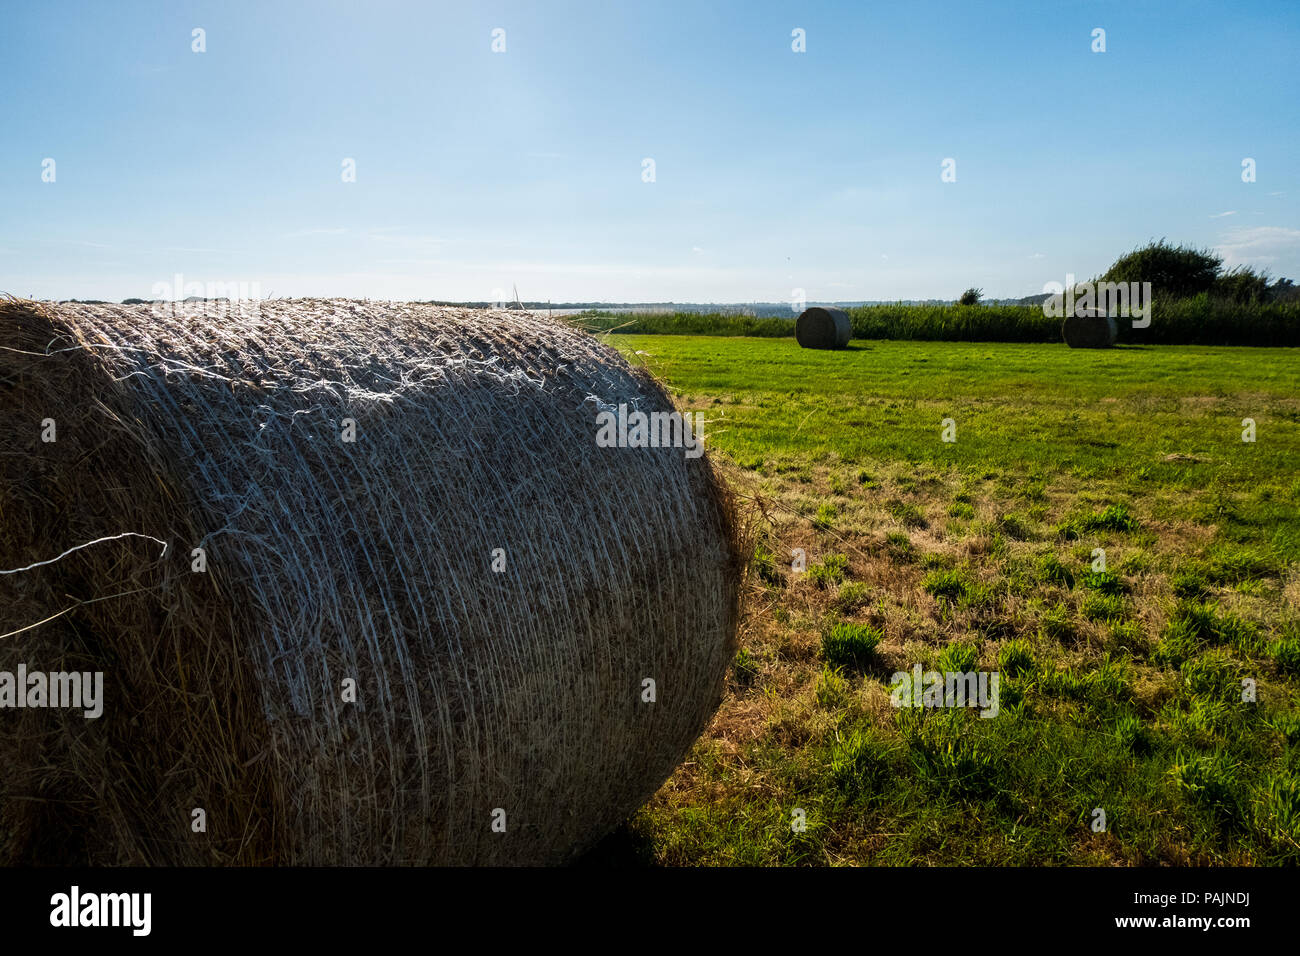 landscape of an agriculture field with hay rolls with a bright sun